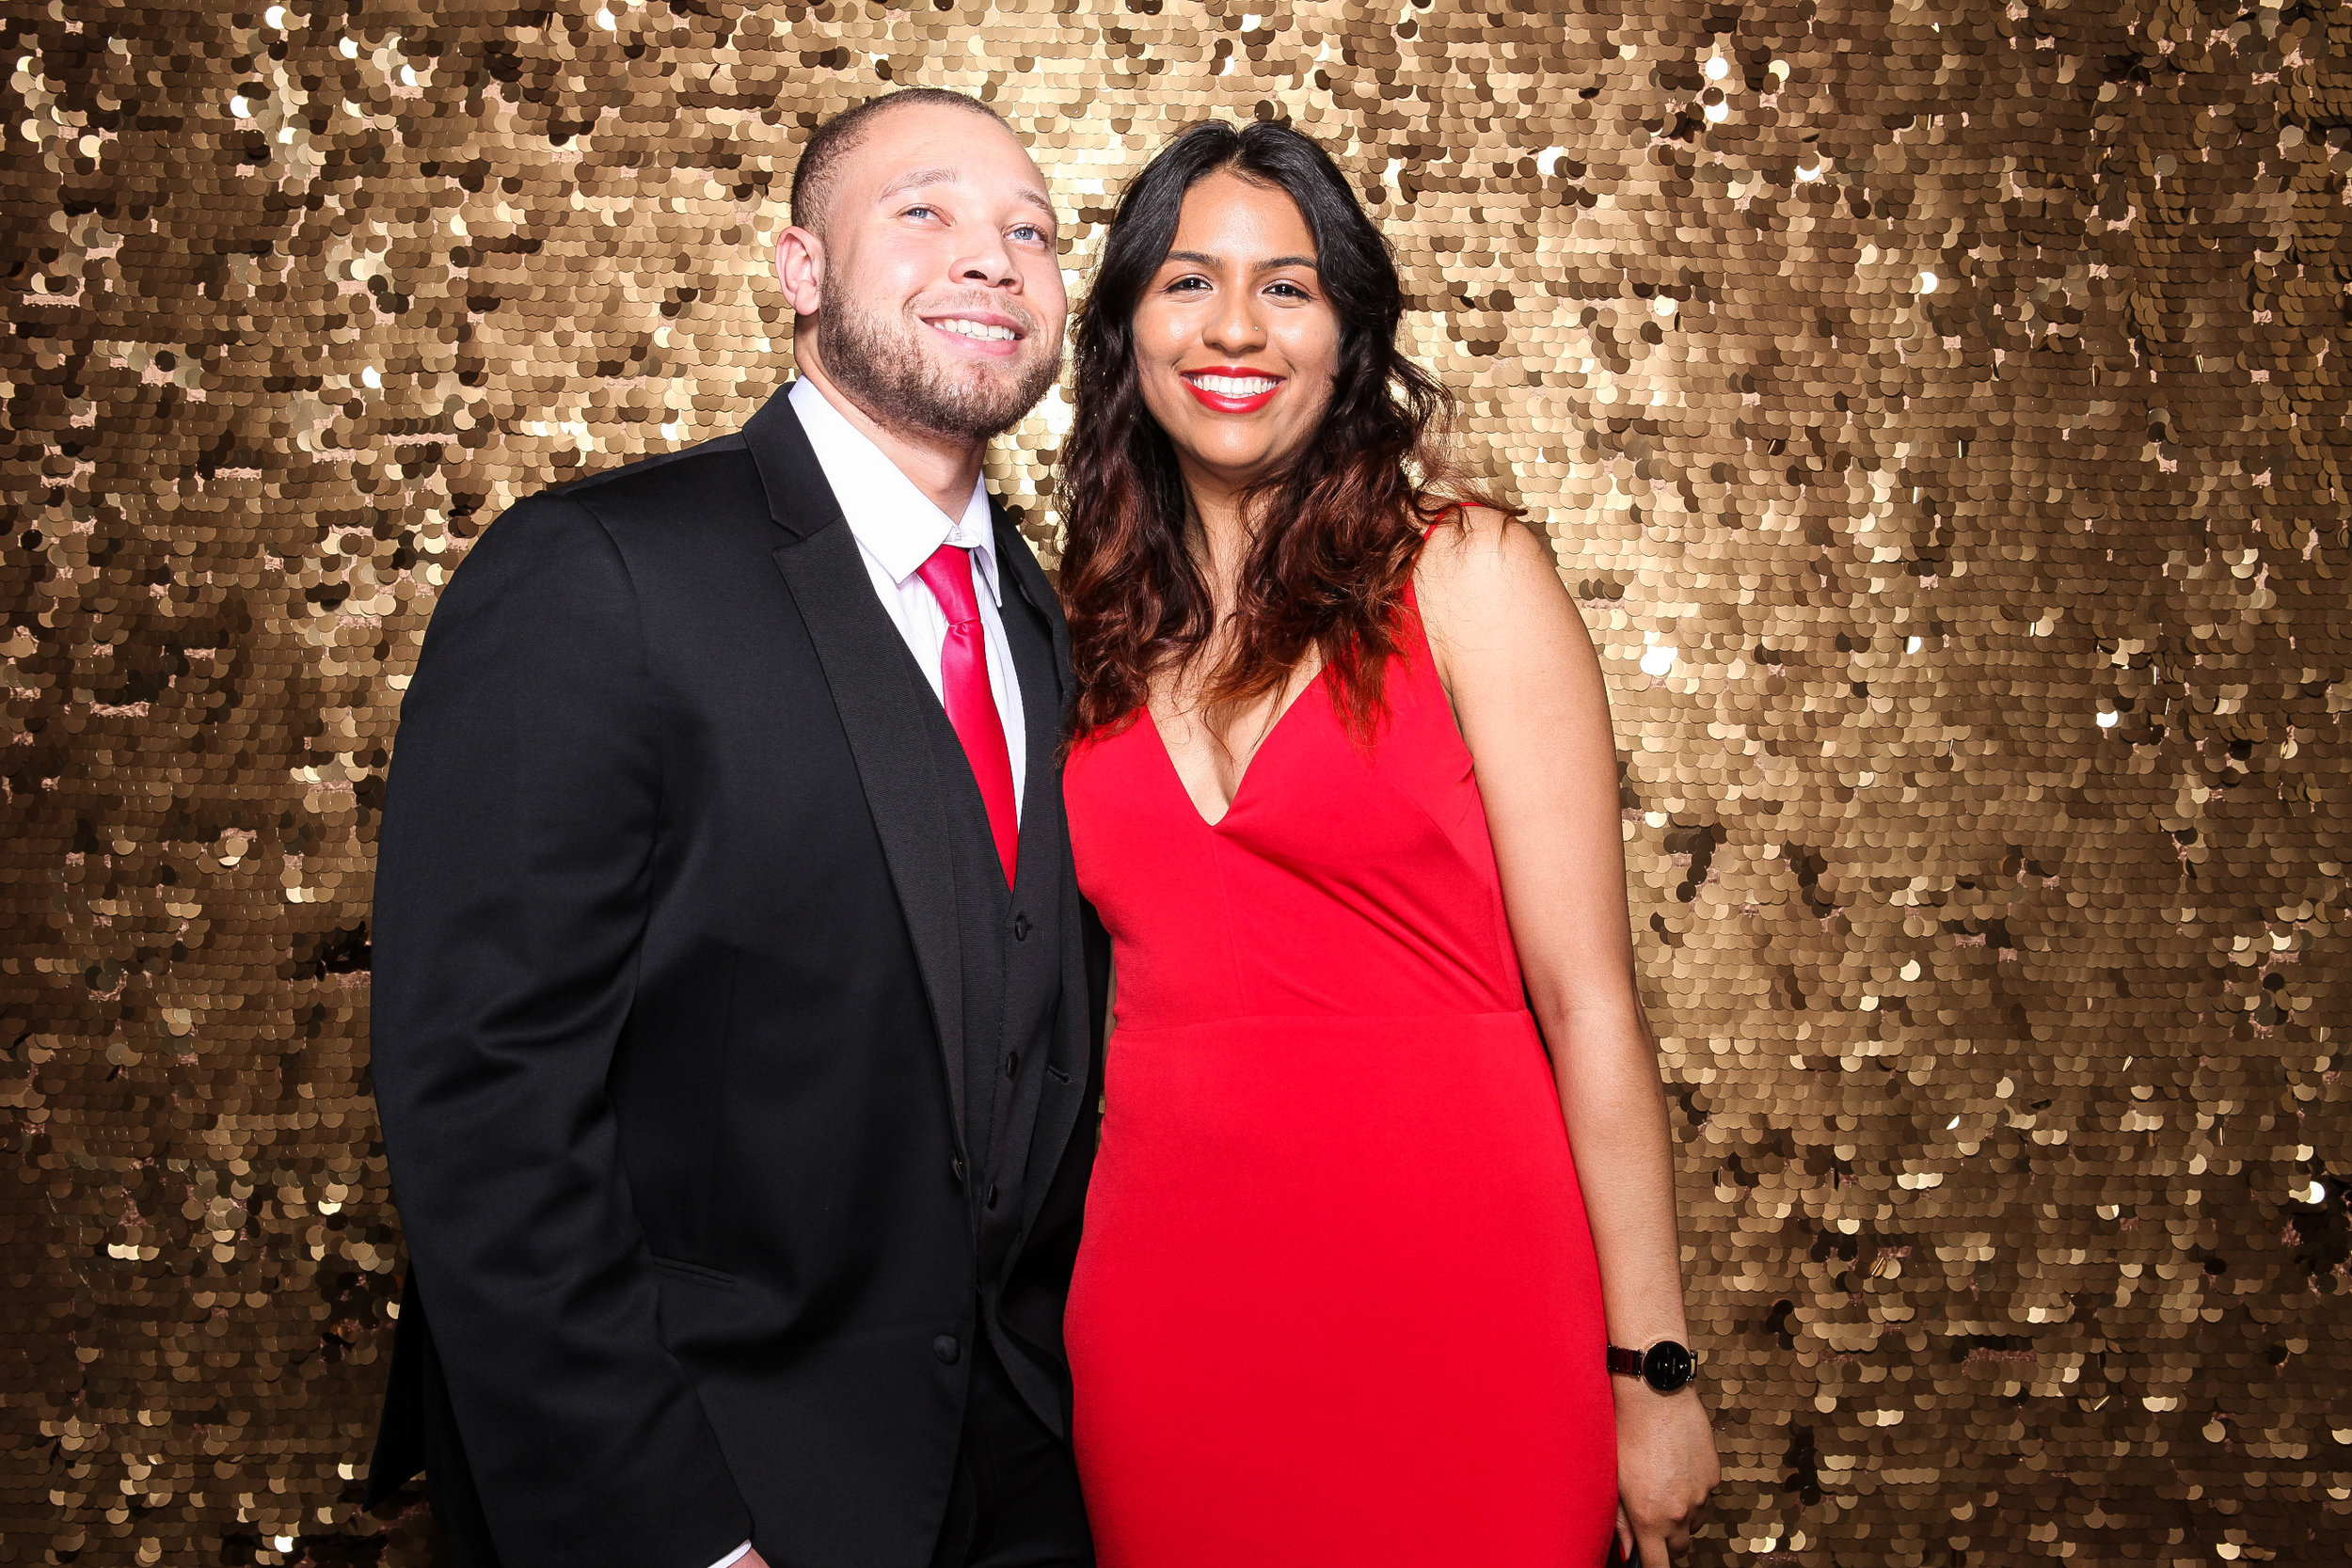 20190503_Adelphi_Senior_Formal-052.jpg